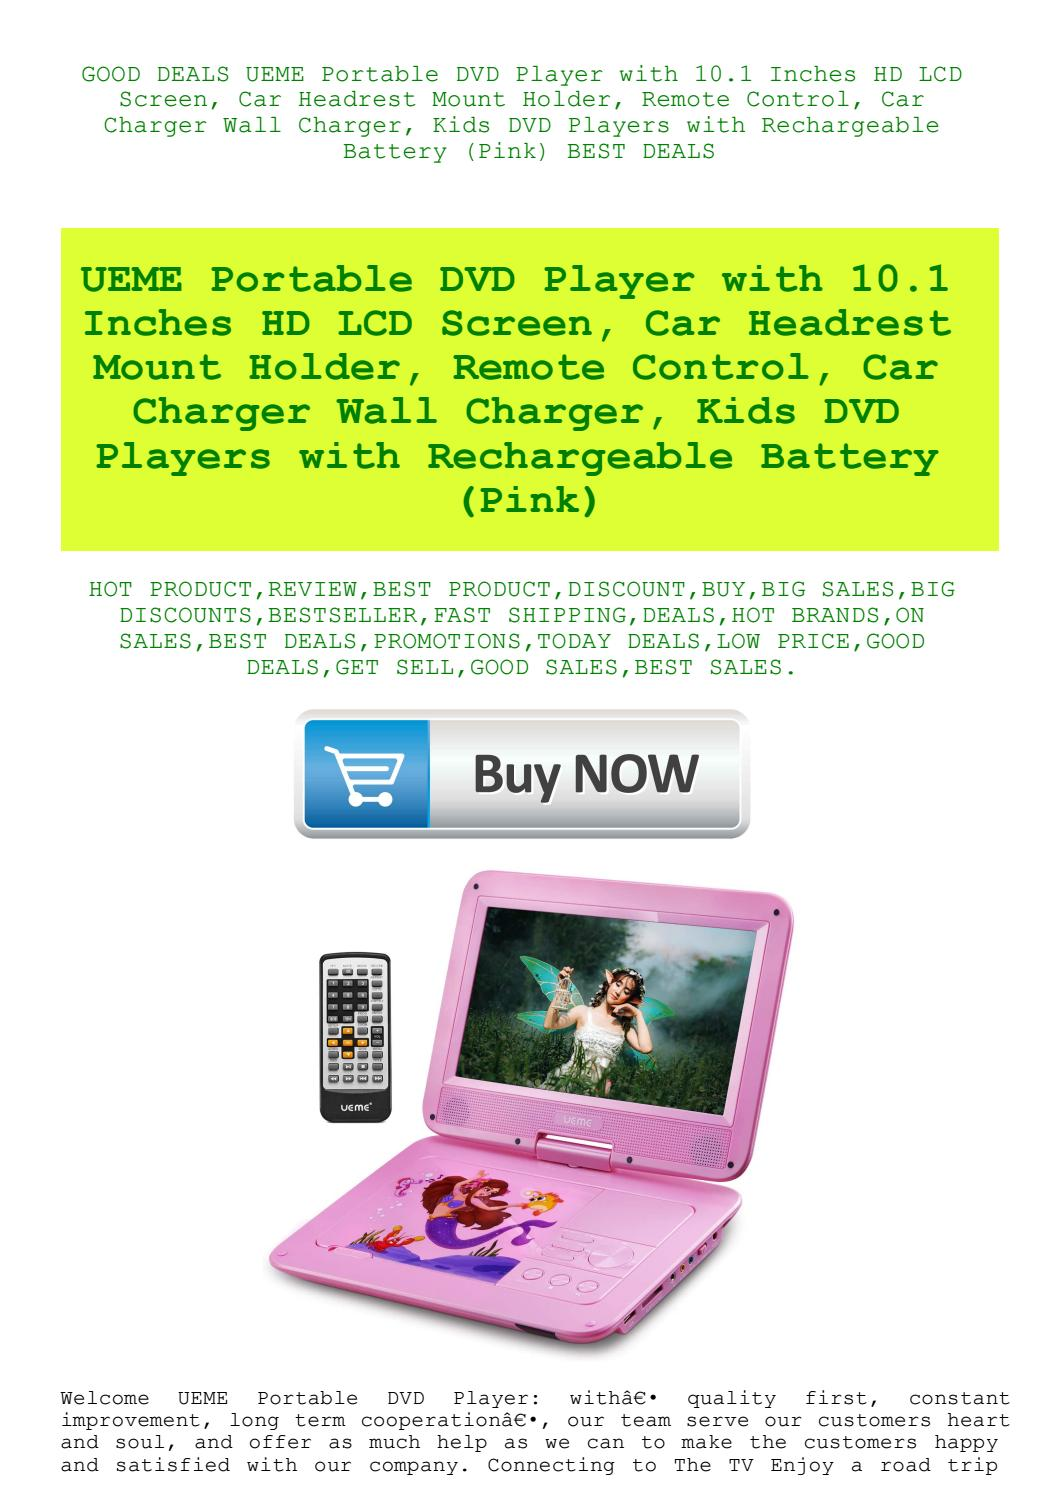 Good Deals Ueme Portable Dvd Player With 10 1 Inches Hd Lcd Screen Car Headrest Mount Holder Remot By Tvnikhaid Issuu